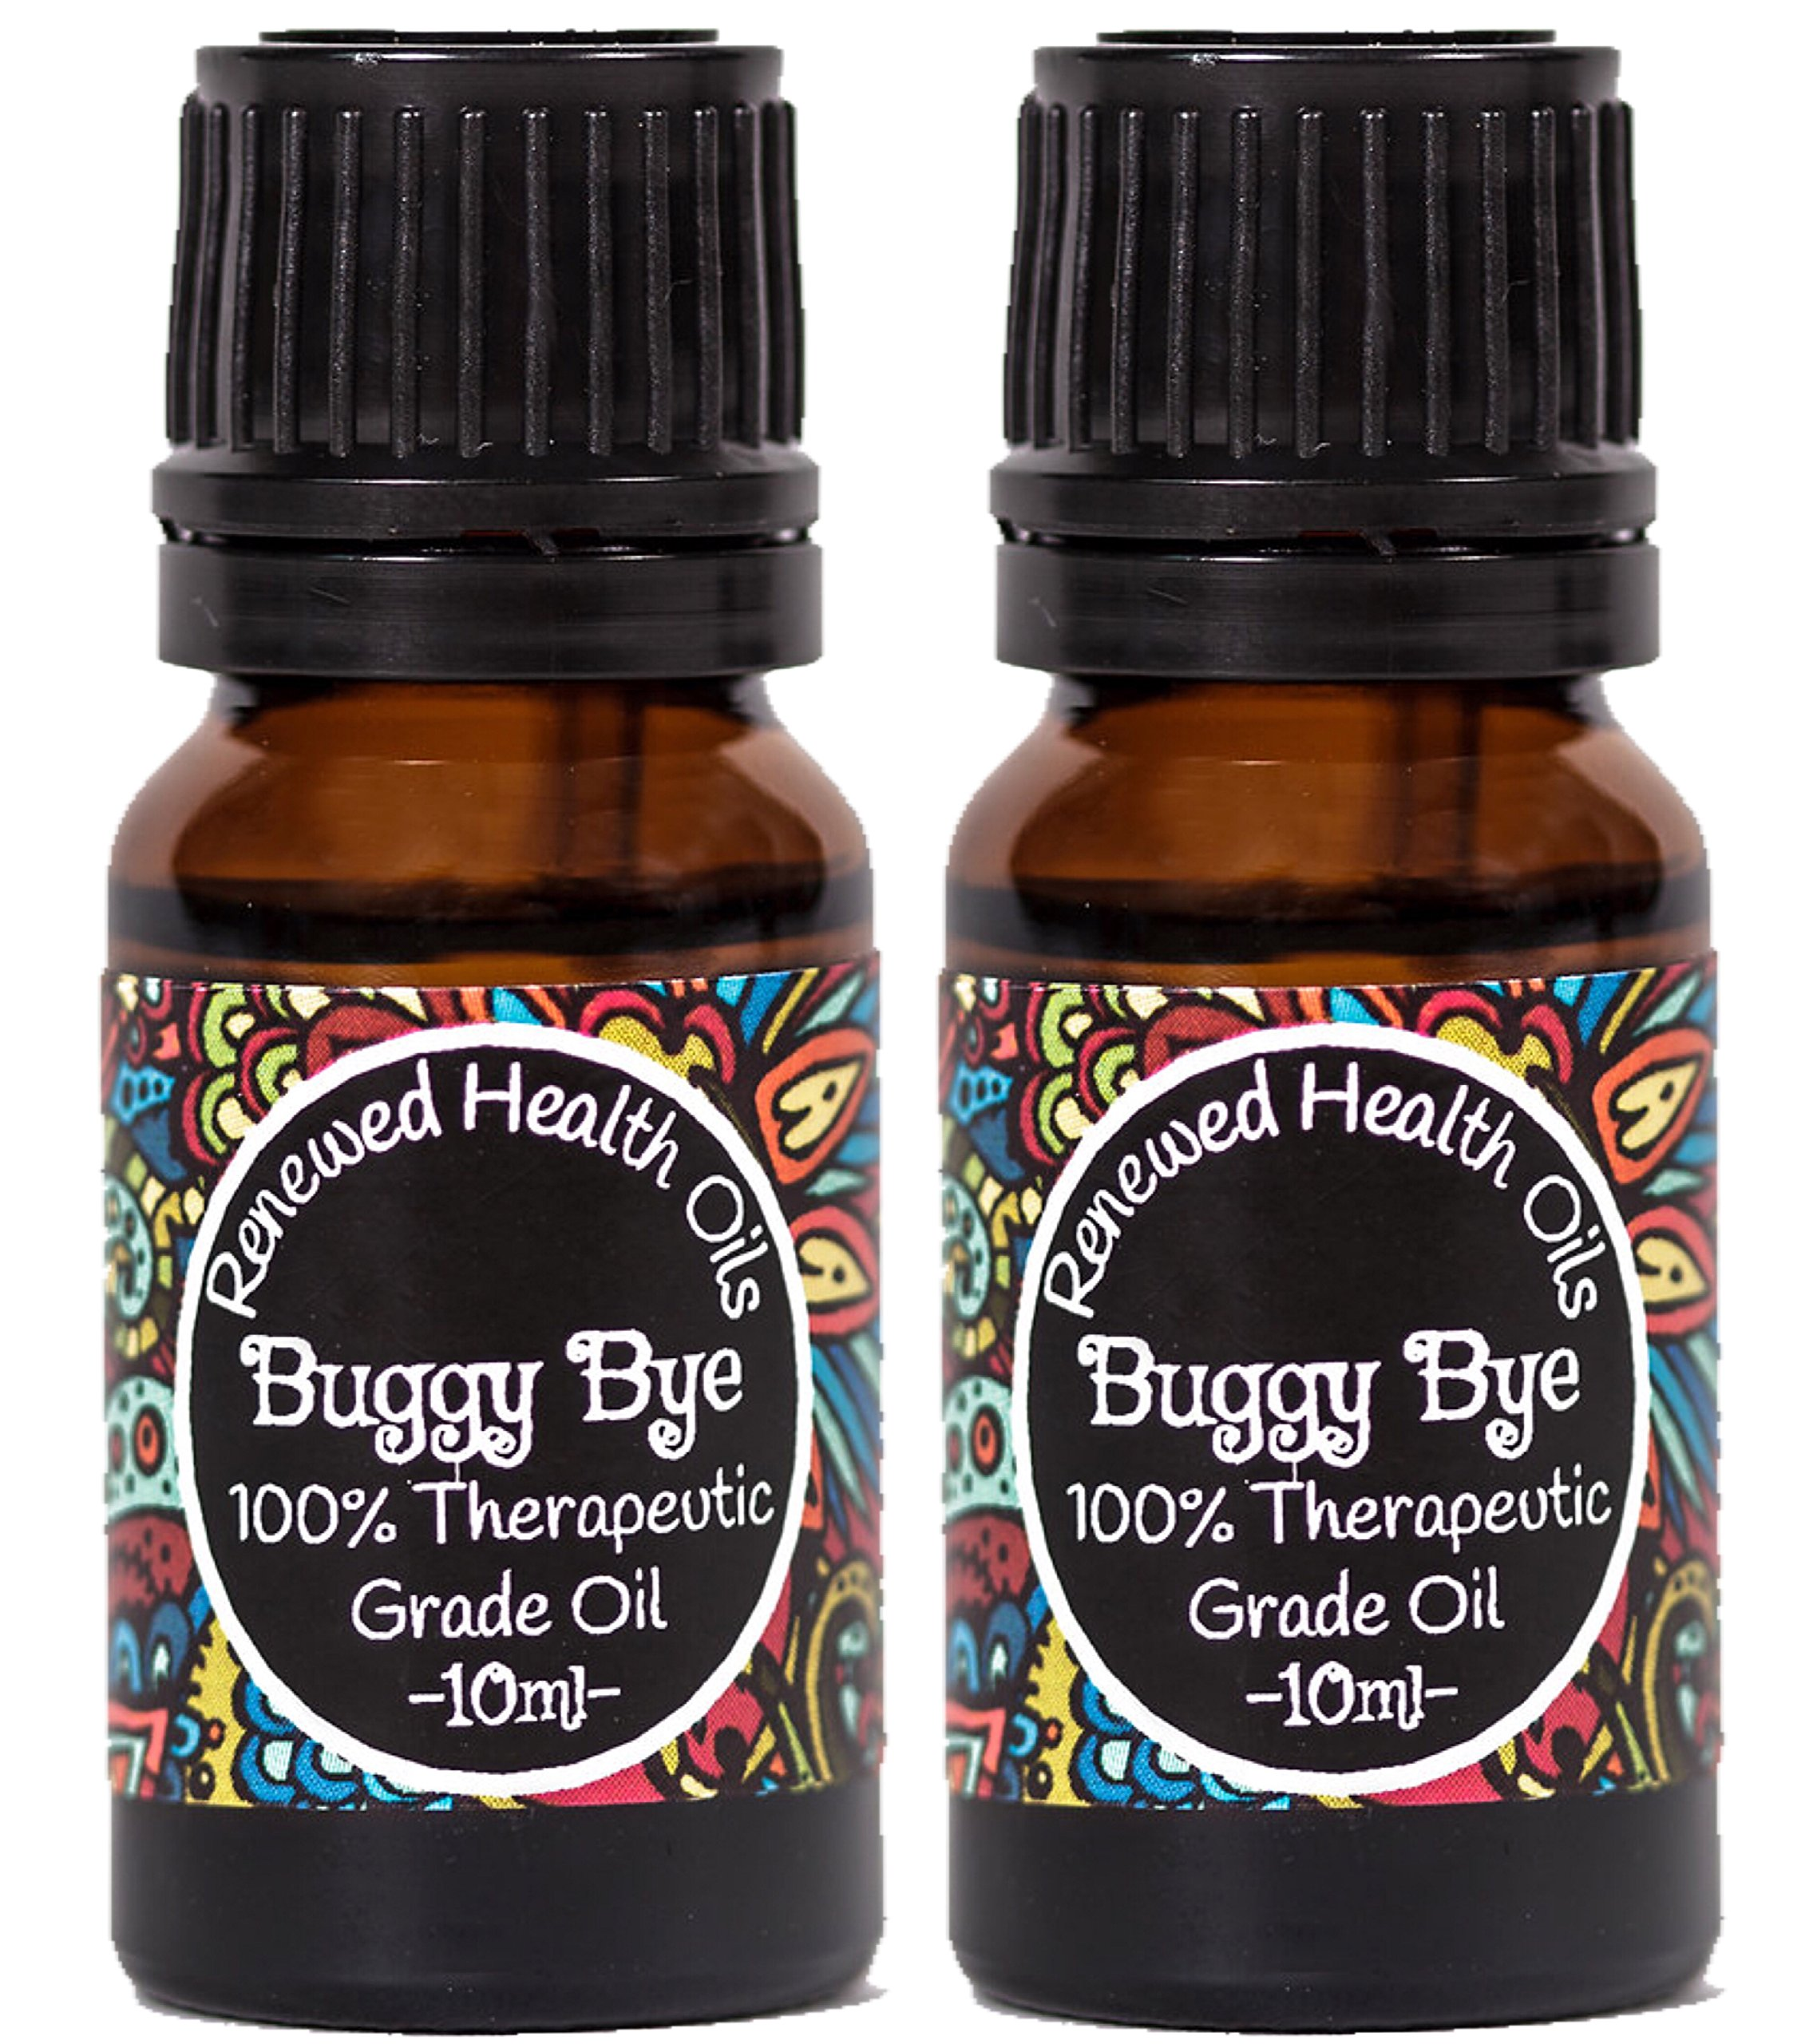 Insect Repellent Essential Oil Blend- Buggy Bye 10ml Deet Free Mosquito Tick Ants 100% Pure Essential Oil #1 Best Quality Aromatherapy Diffusing Oil(2 Pack) by Renewed Health Oils